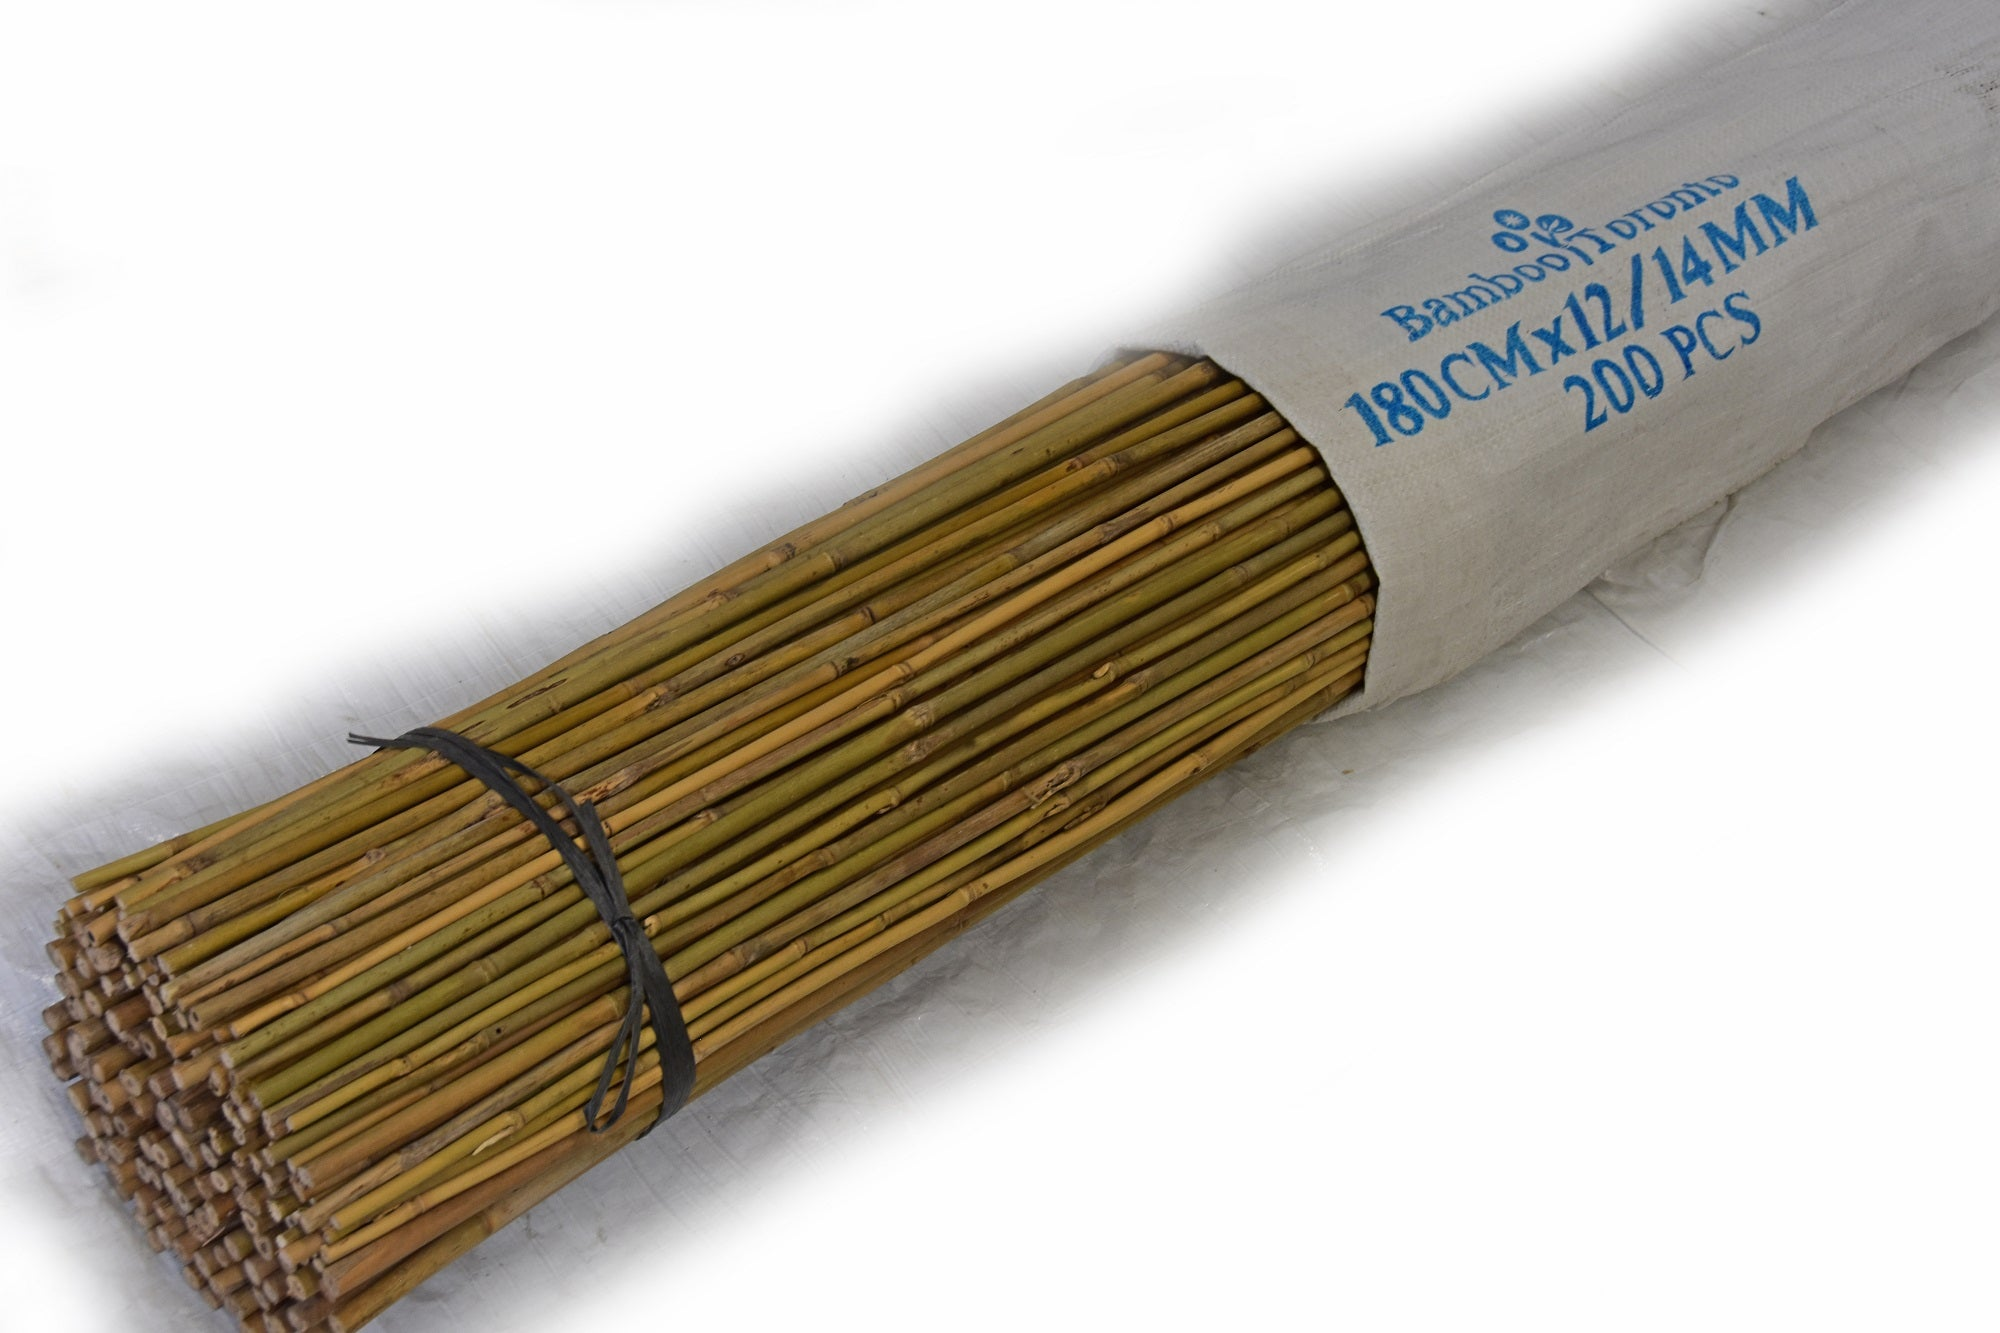 Tonkin Bamboo Pole 12-14mm x 6' Bundle of 200 - Bamboo Toronto Store